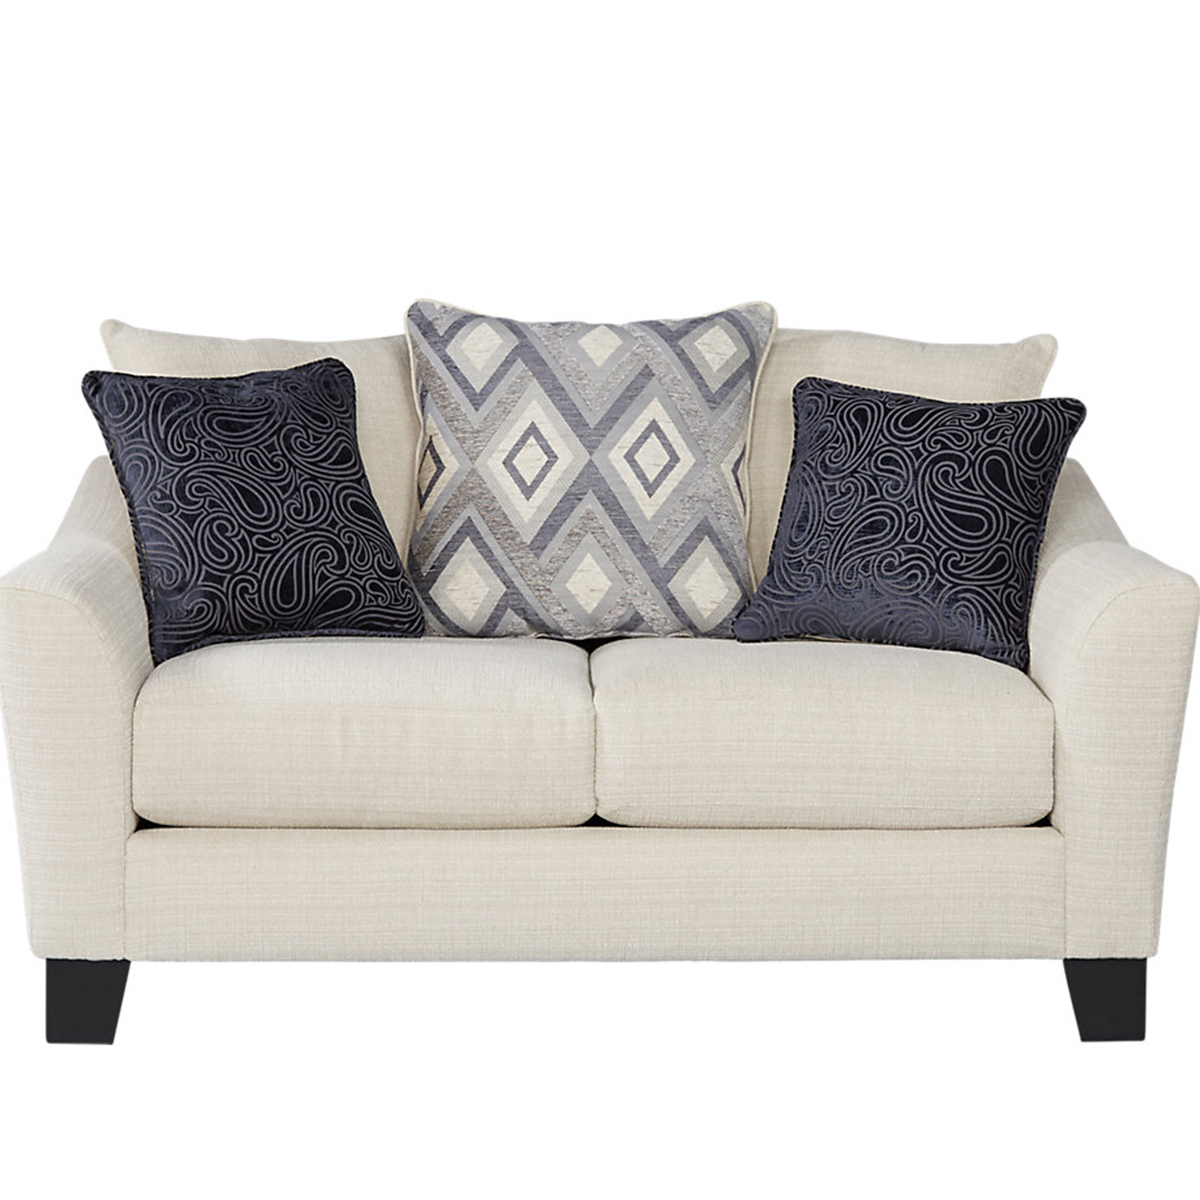 Cream love seat comes with patterned throw pillows photo